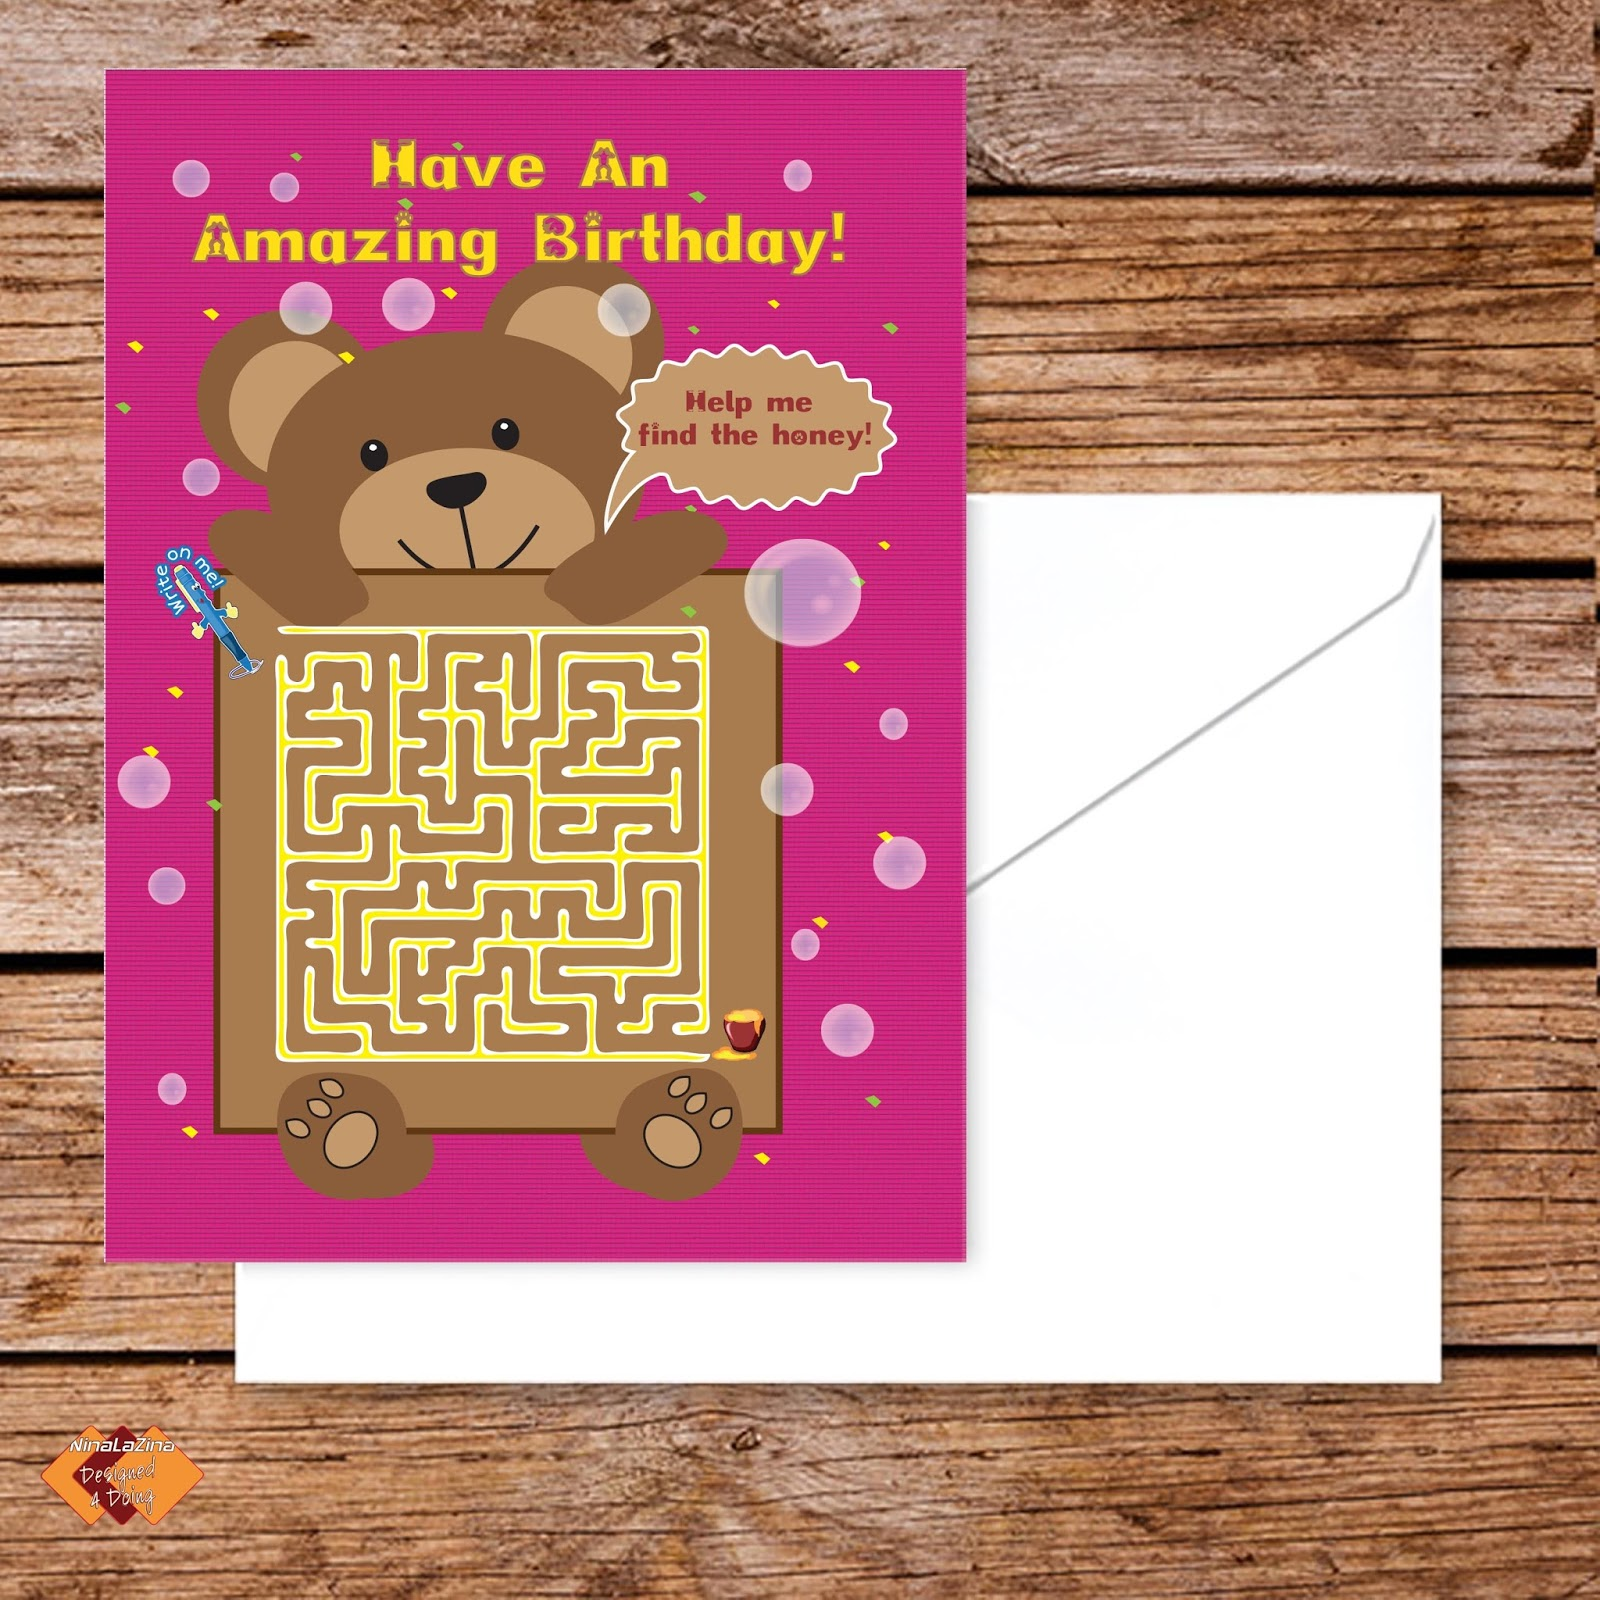 Designed4doing an interview with myself unusual greeting birthday unusual greeting birthday cards recipe word search sudoku puzzles food gifts designed4doing something with m4hsunfo